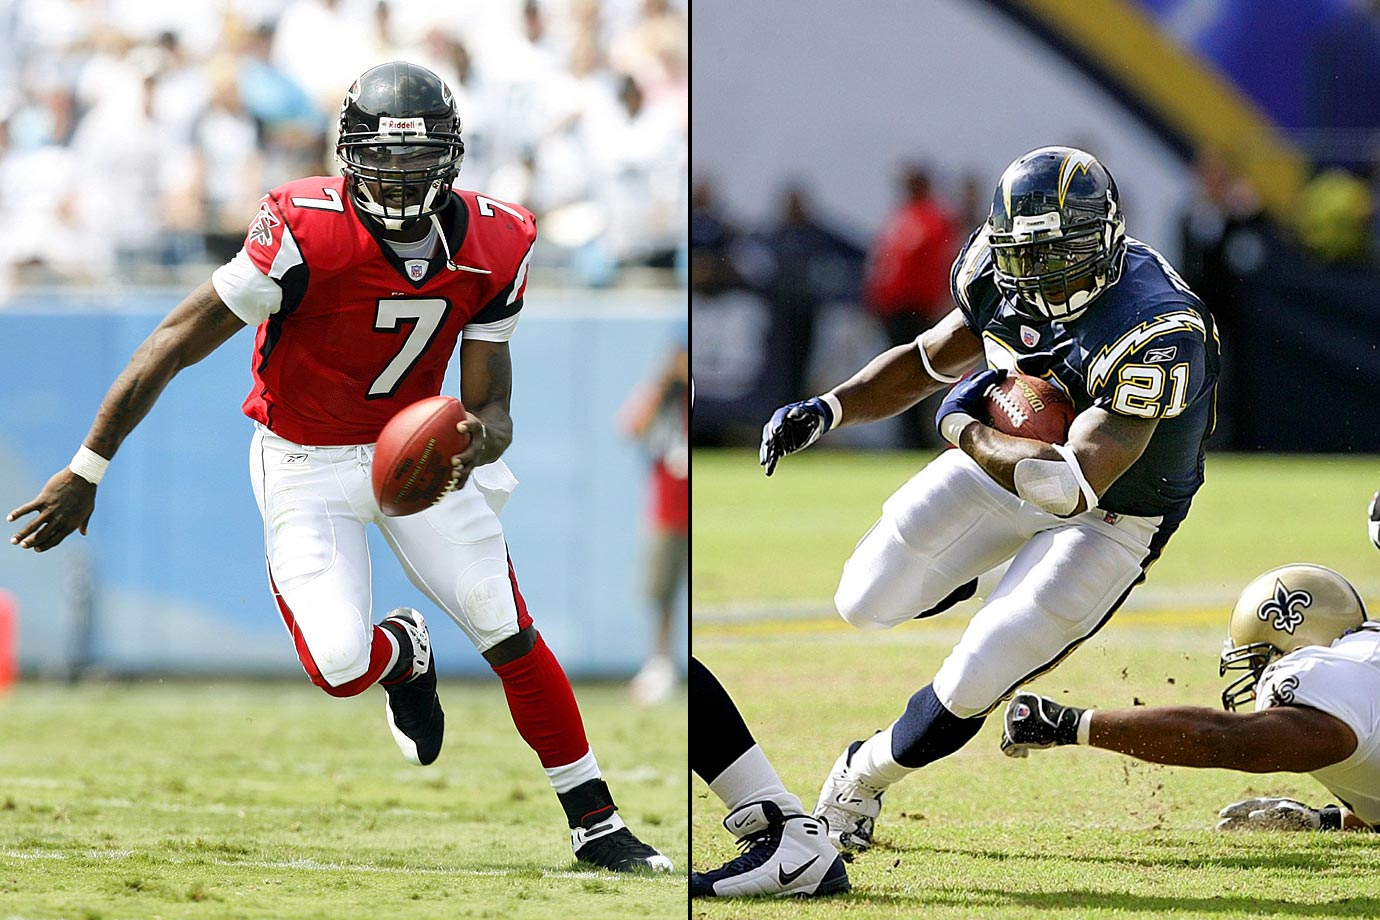 Chargers trade the first pick in the draft to the Falcons for the fifth pick in the first round, the fifth pick in the third, a future second-round pick and receiver Tim Dwight In what turned out to be a stroke of brilliance, the Chargers dealt the top pick that Atlanta used to take Michael Vick and wound up with the greatest runner of his era, LaDainian Tomlinson (at No. 5), along with cornerback Tay Cody and wide receivers Reche Caldwell and Dwight. The cherry on top for the Chargers came with the first pick in the second round when another QB, Purdue's Drew Brees, came into the fold.